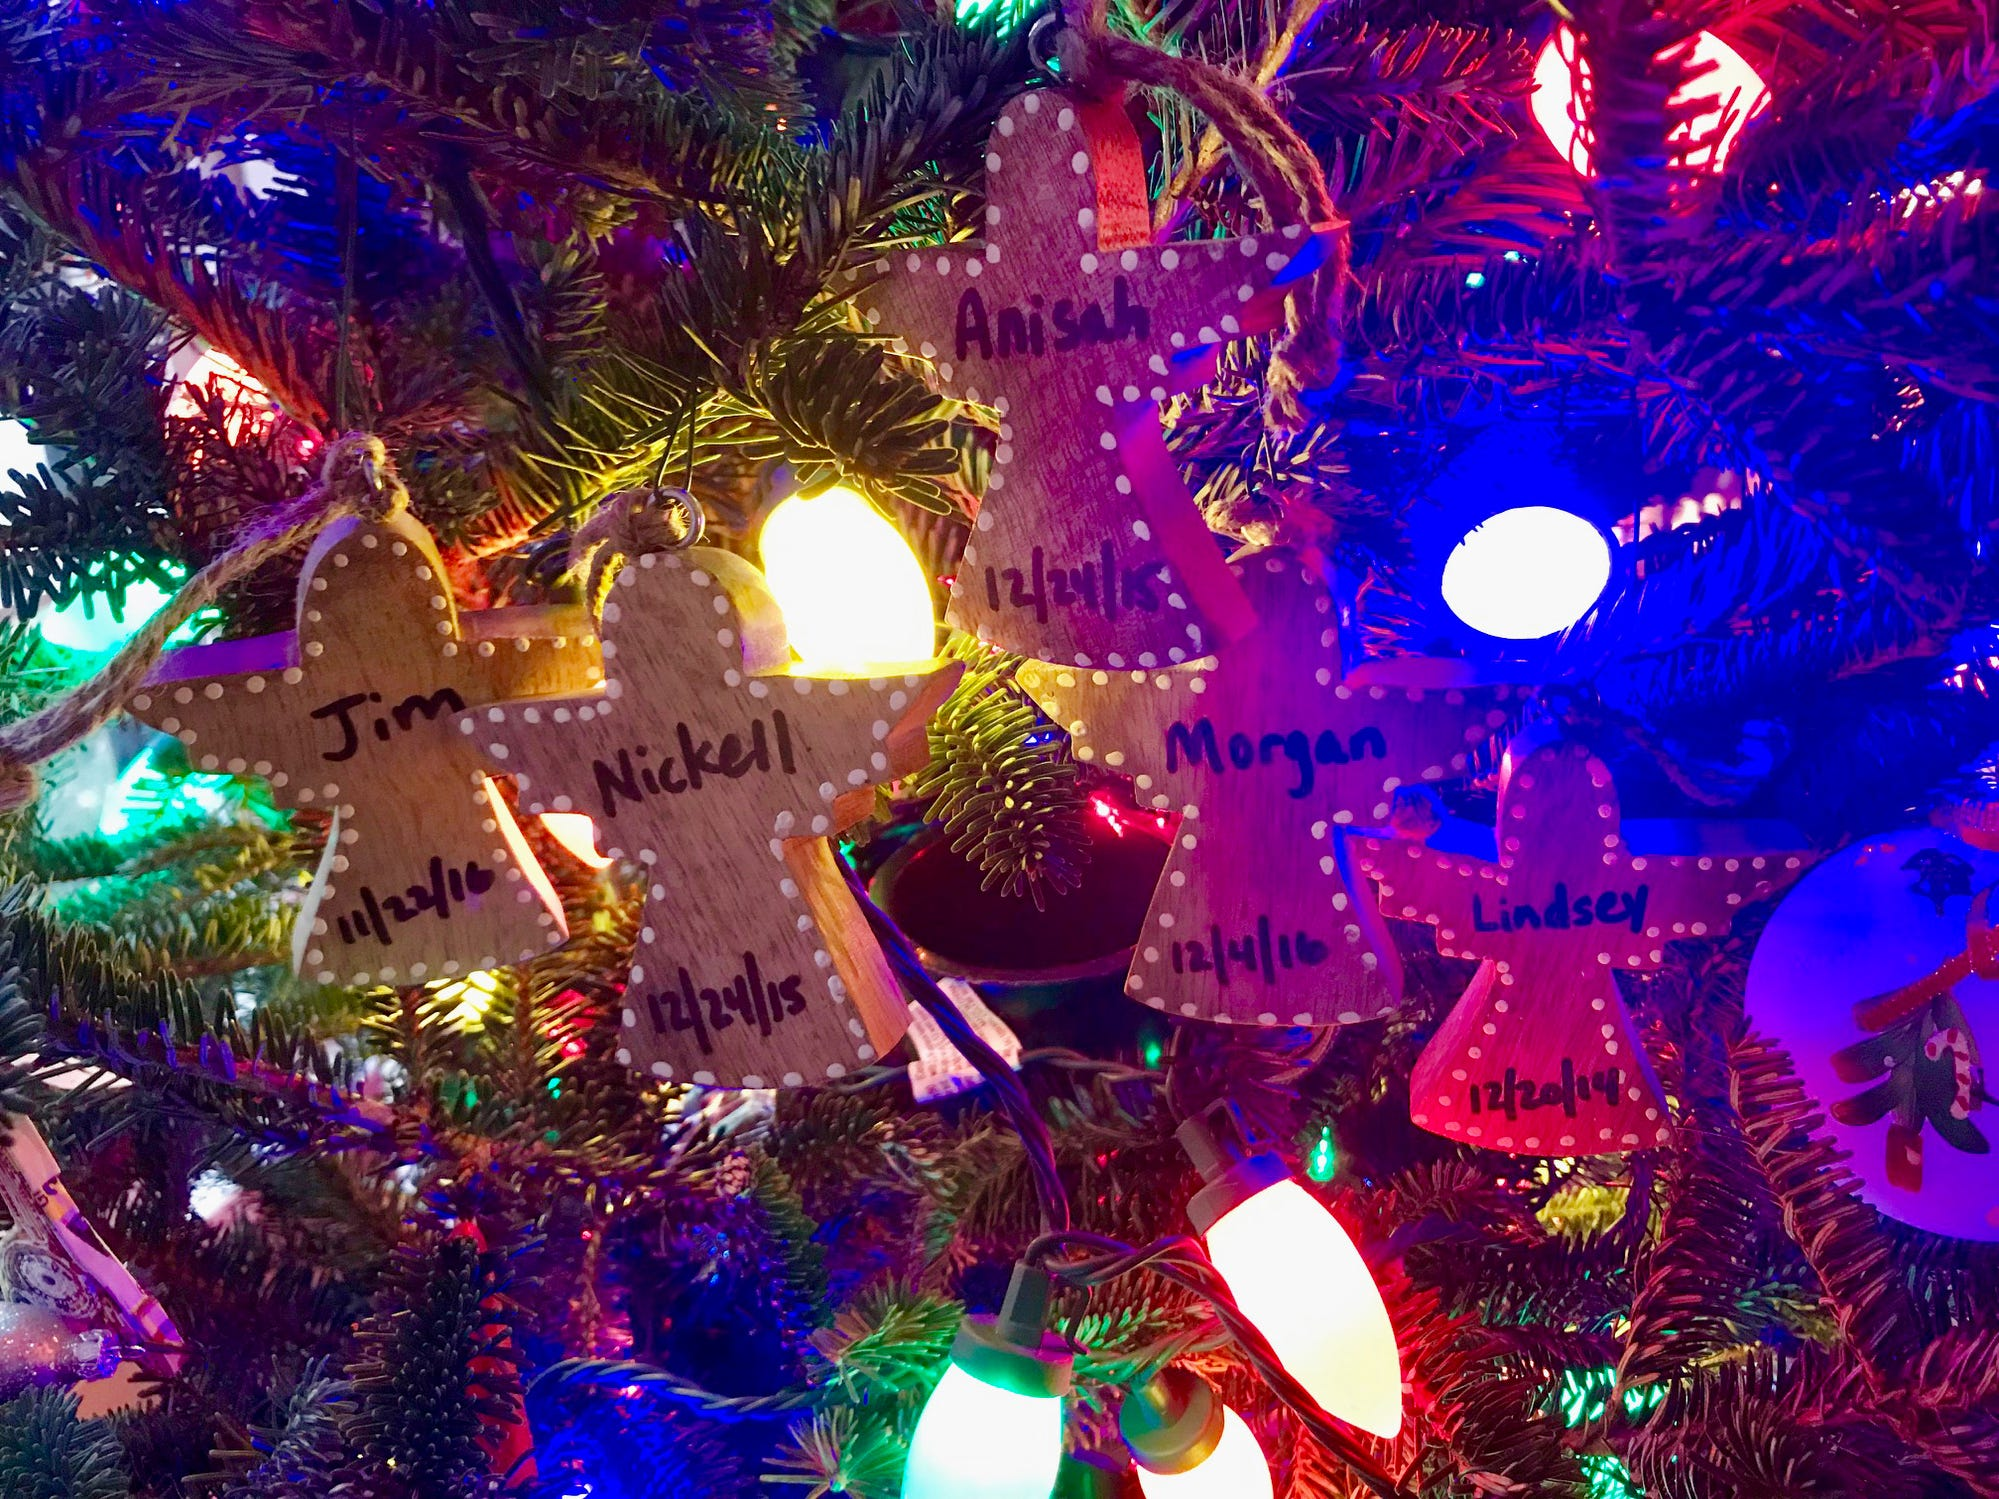 Lisa Whitten of Franklin, Tenn., says her son had five high school friends pass away, and they always have an angel memorial for each one on their Christmas tree.